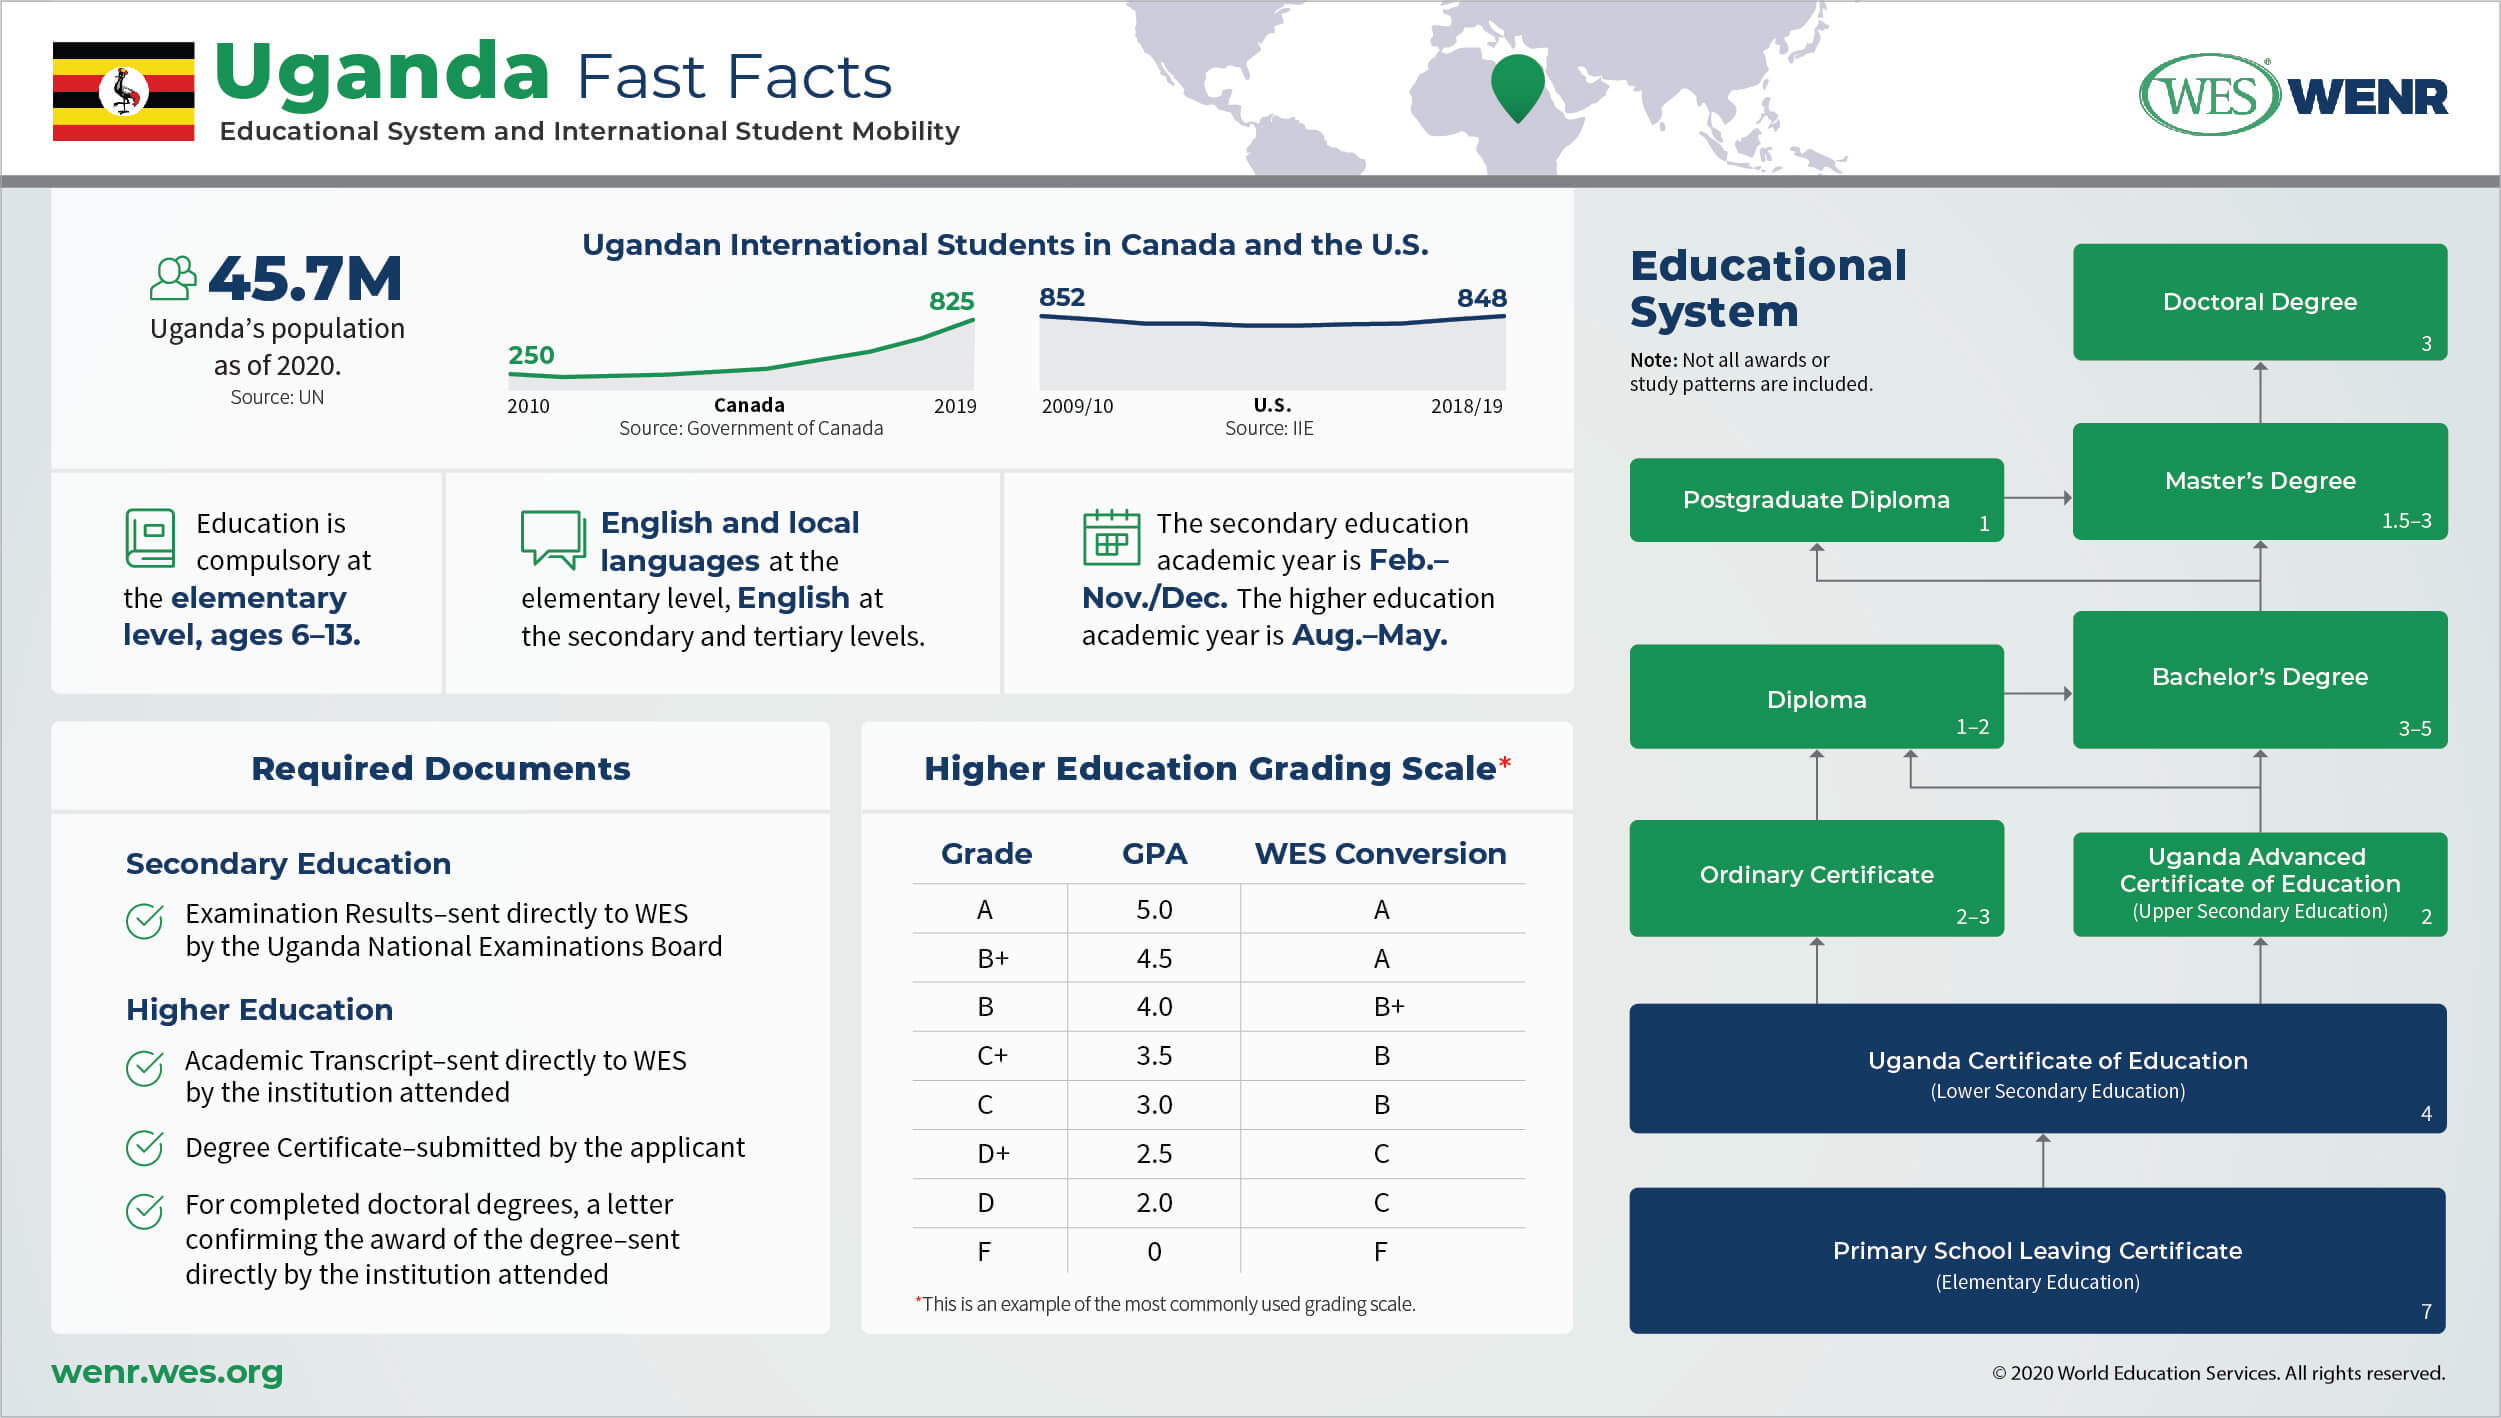 Education in Uganda Infographic: Fast facts on Uganda's educational system and international student mobility